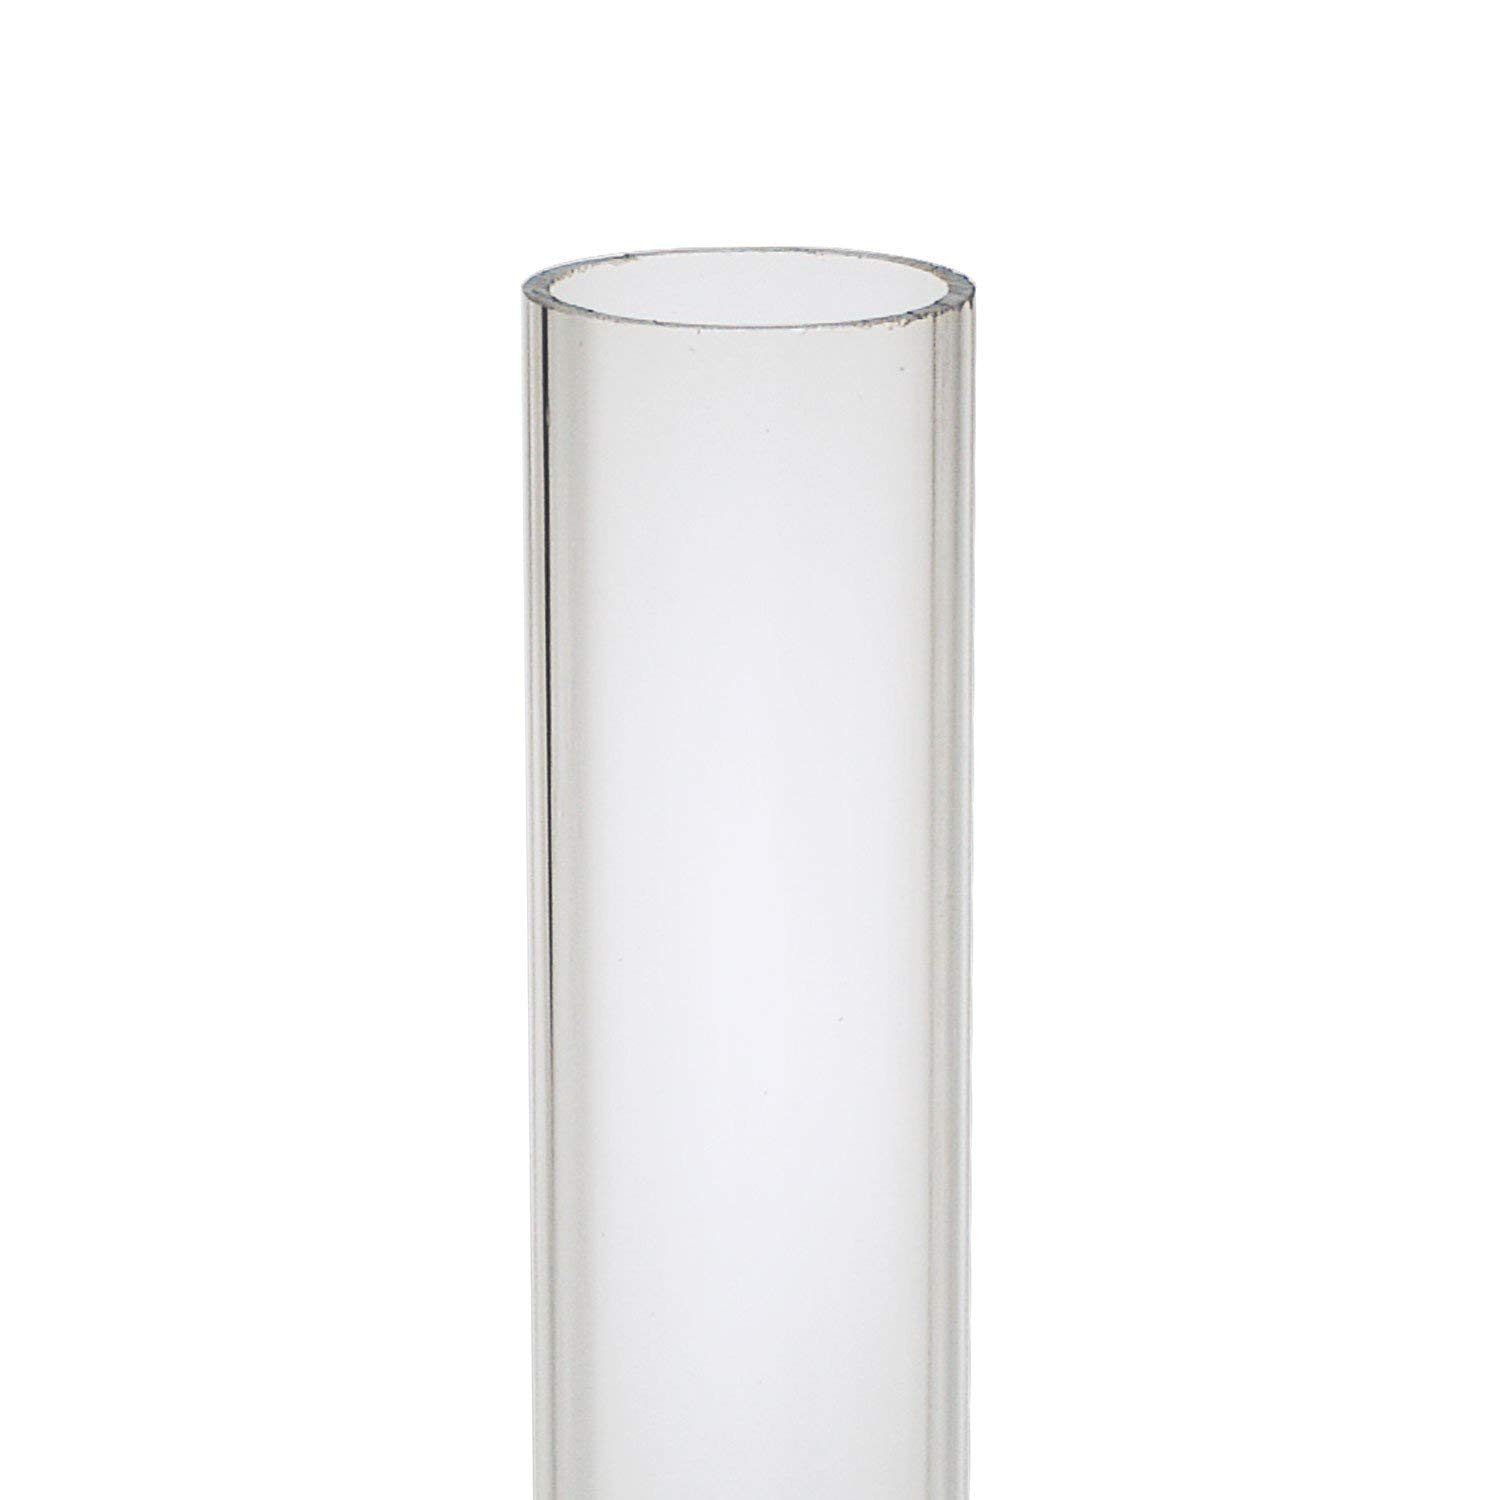 18 Wonderful 36 Inch Tall Glass Vase